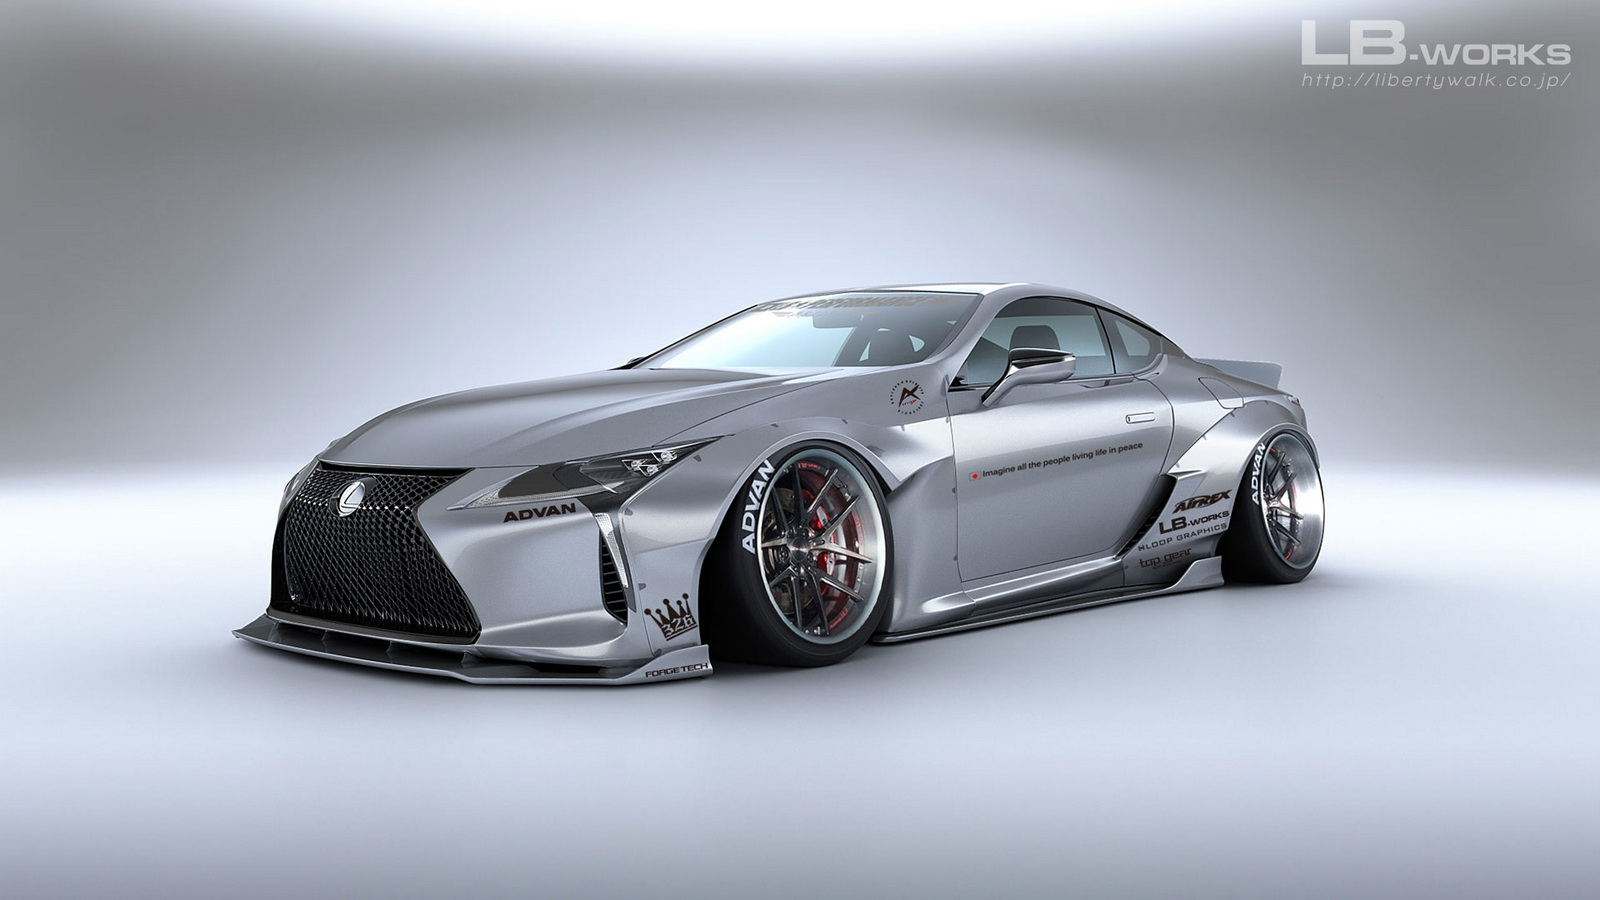 As a result, body kits for the Lexus LC 500 and the LC 500h were released